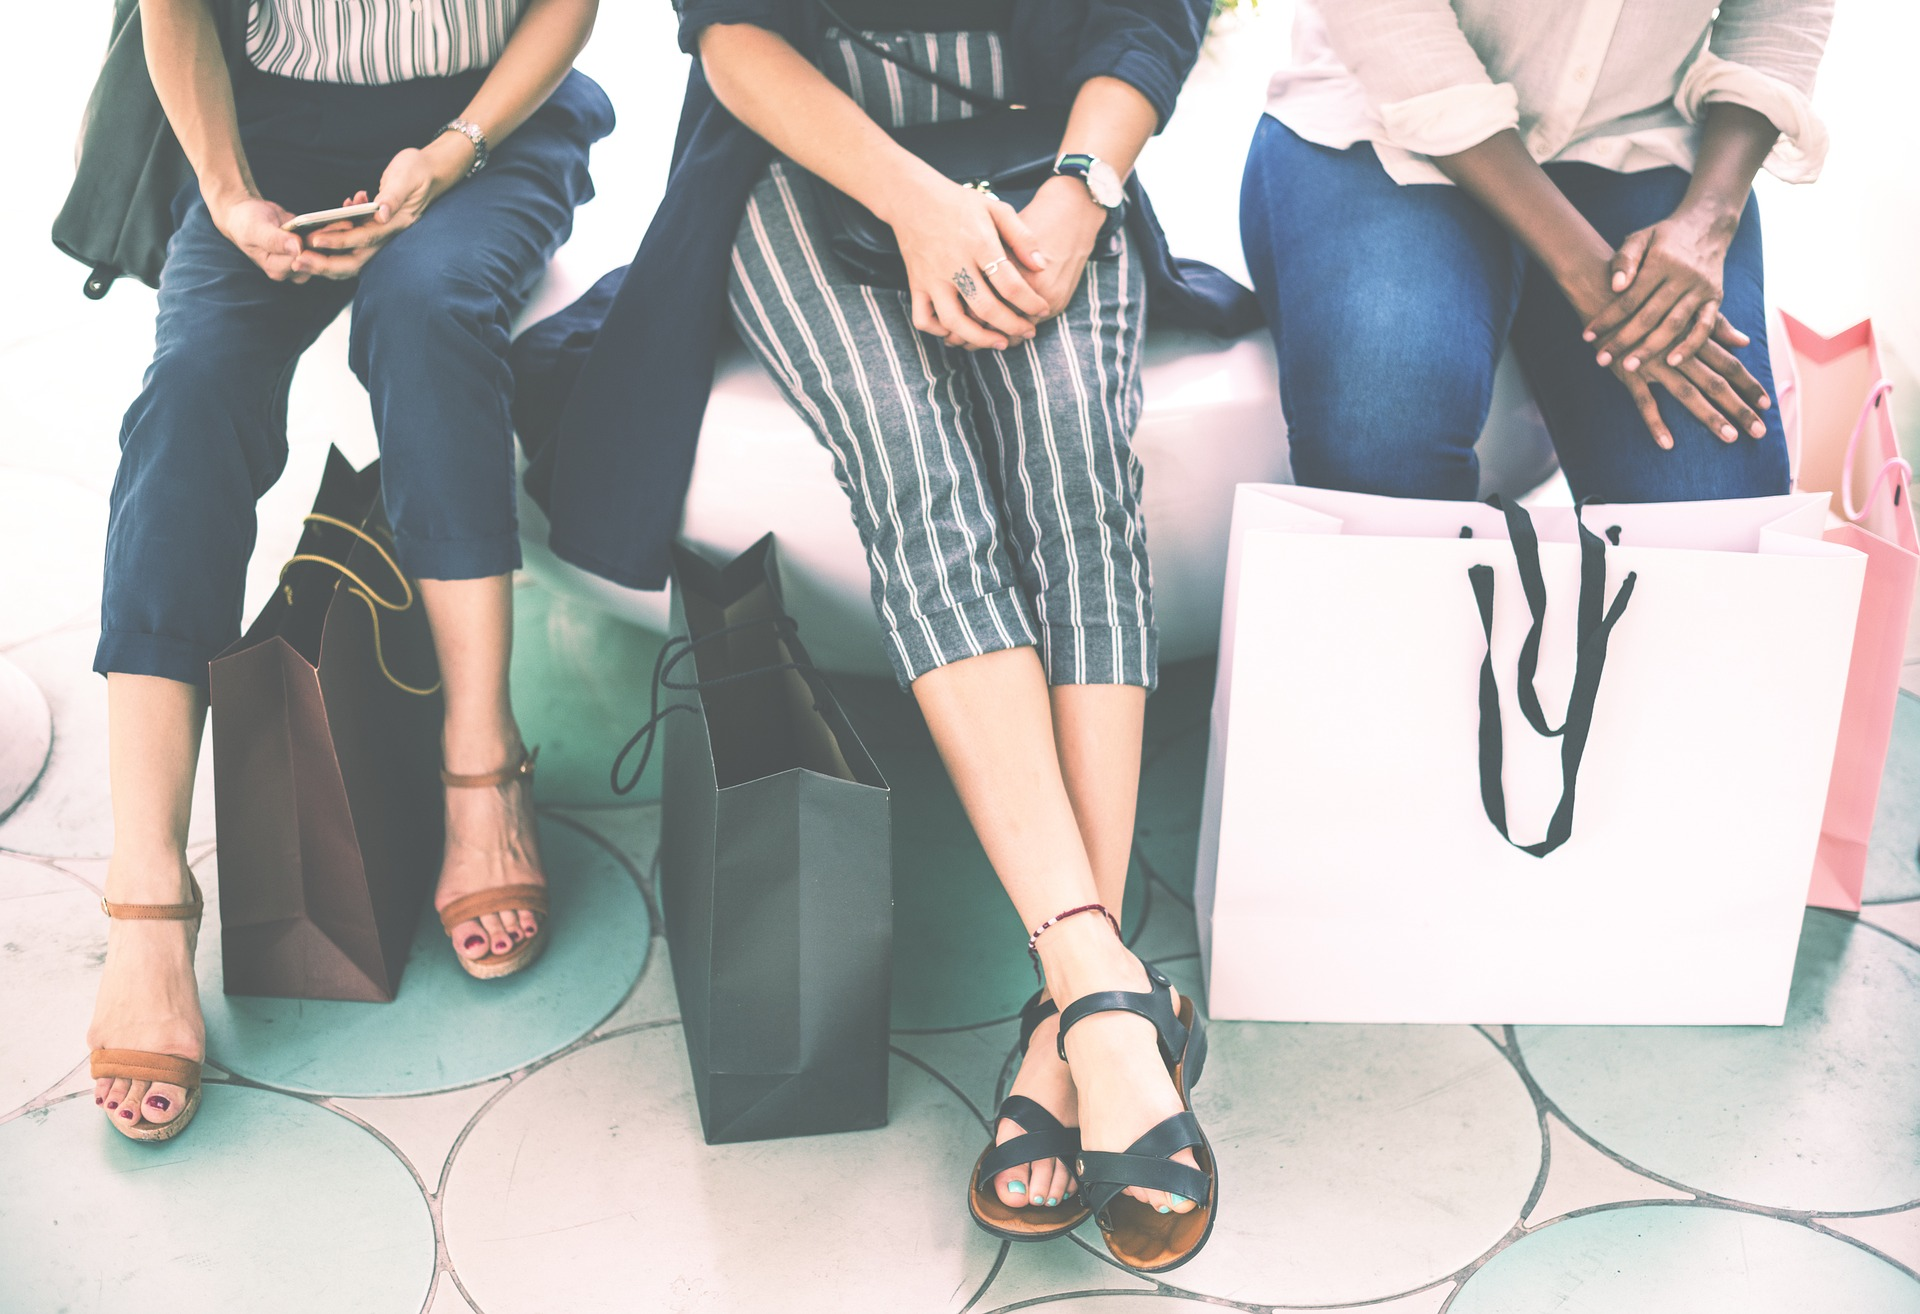 picture of shopping bags and womens' legs